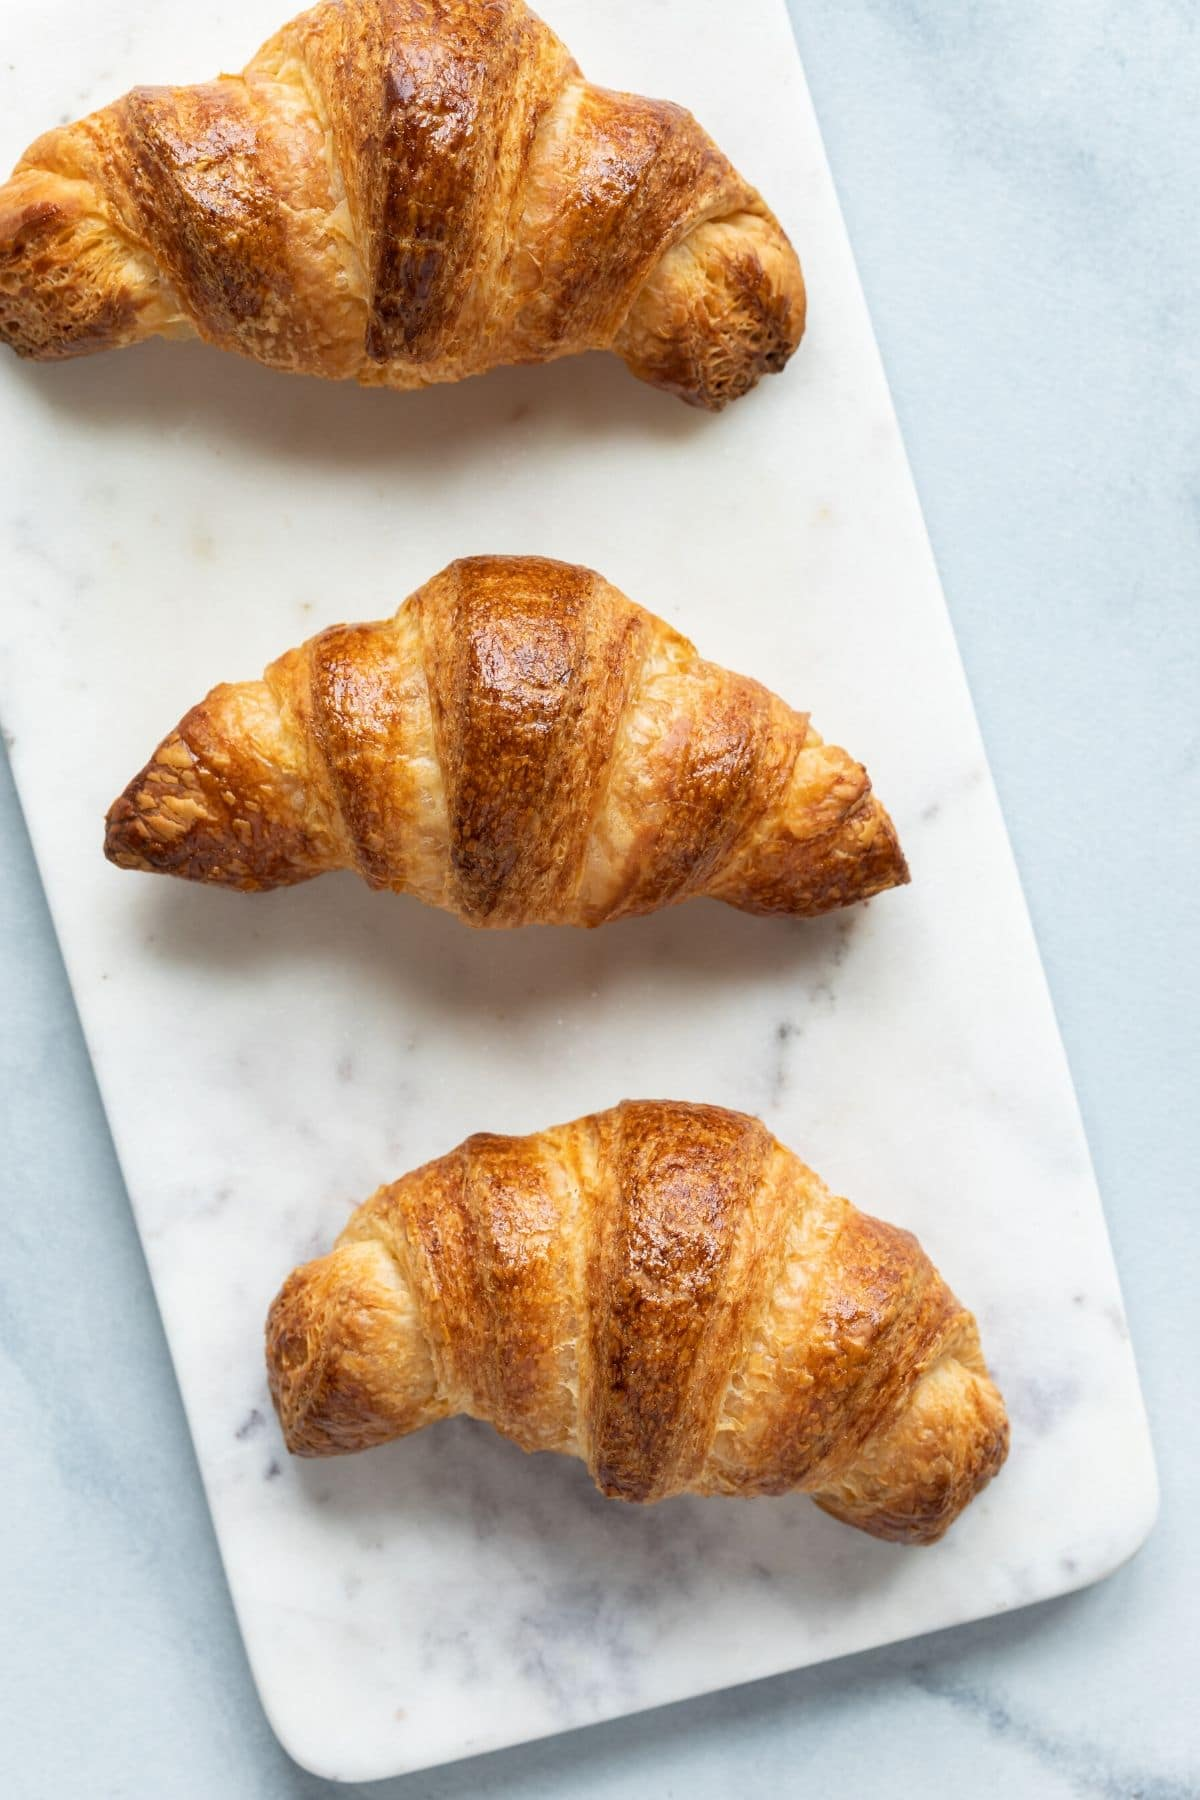 Overhead view of three croissants on a marble slab